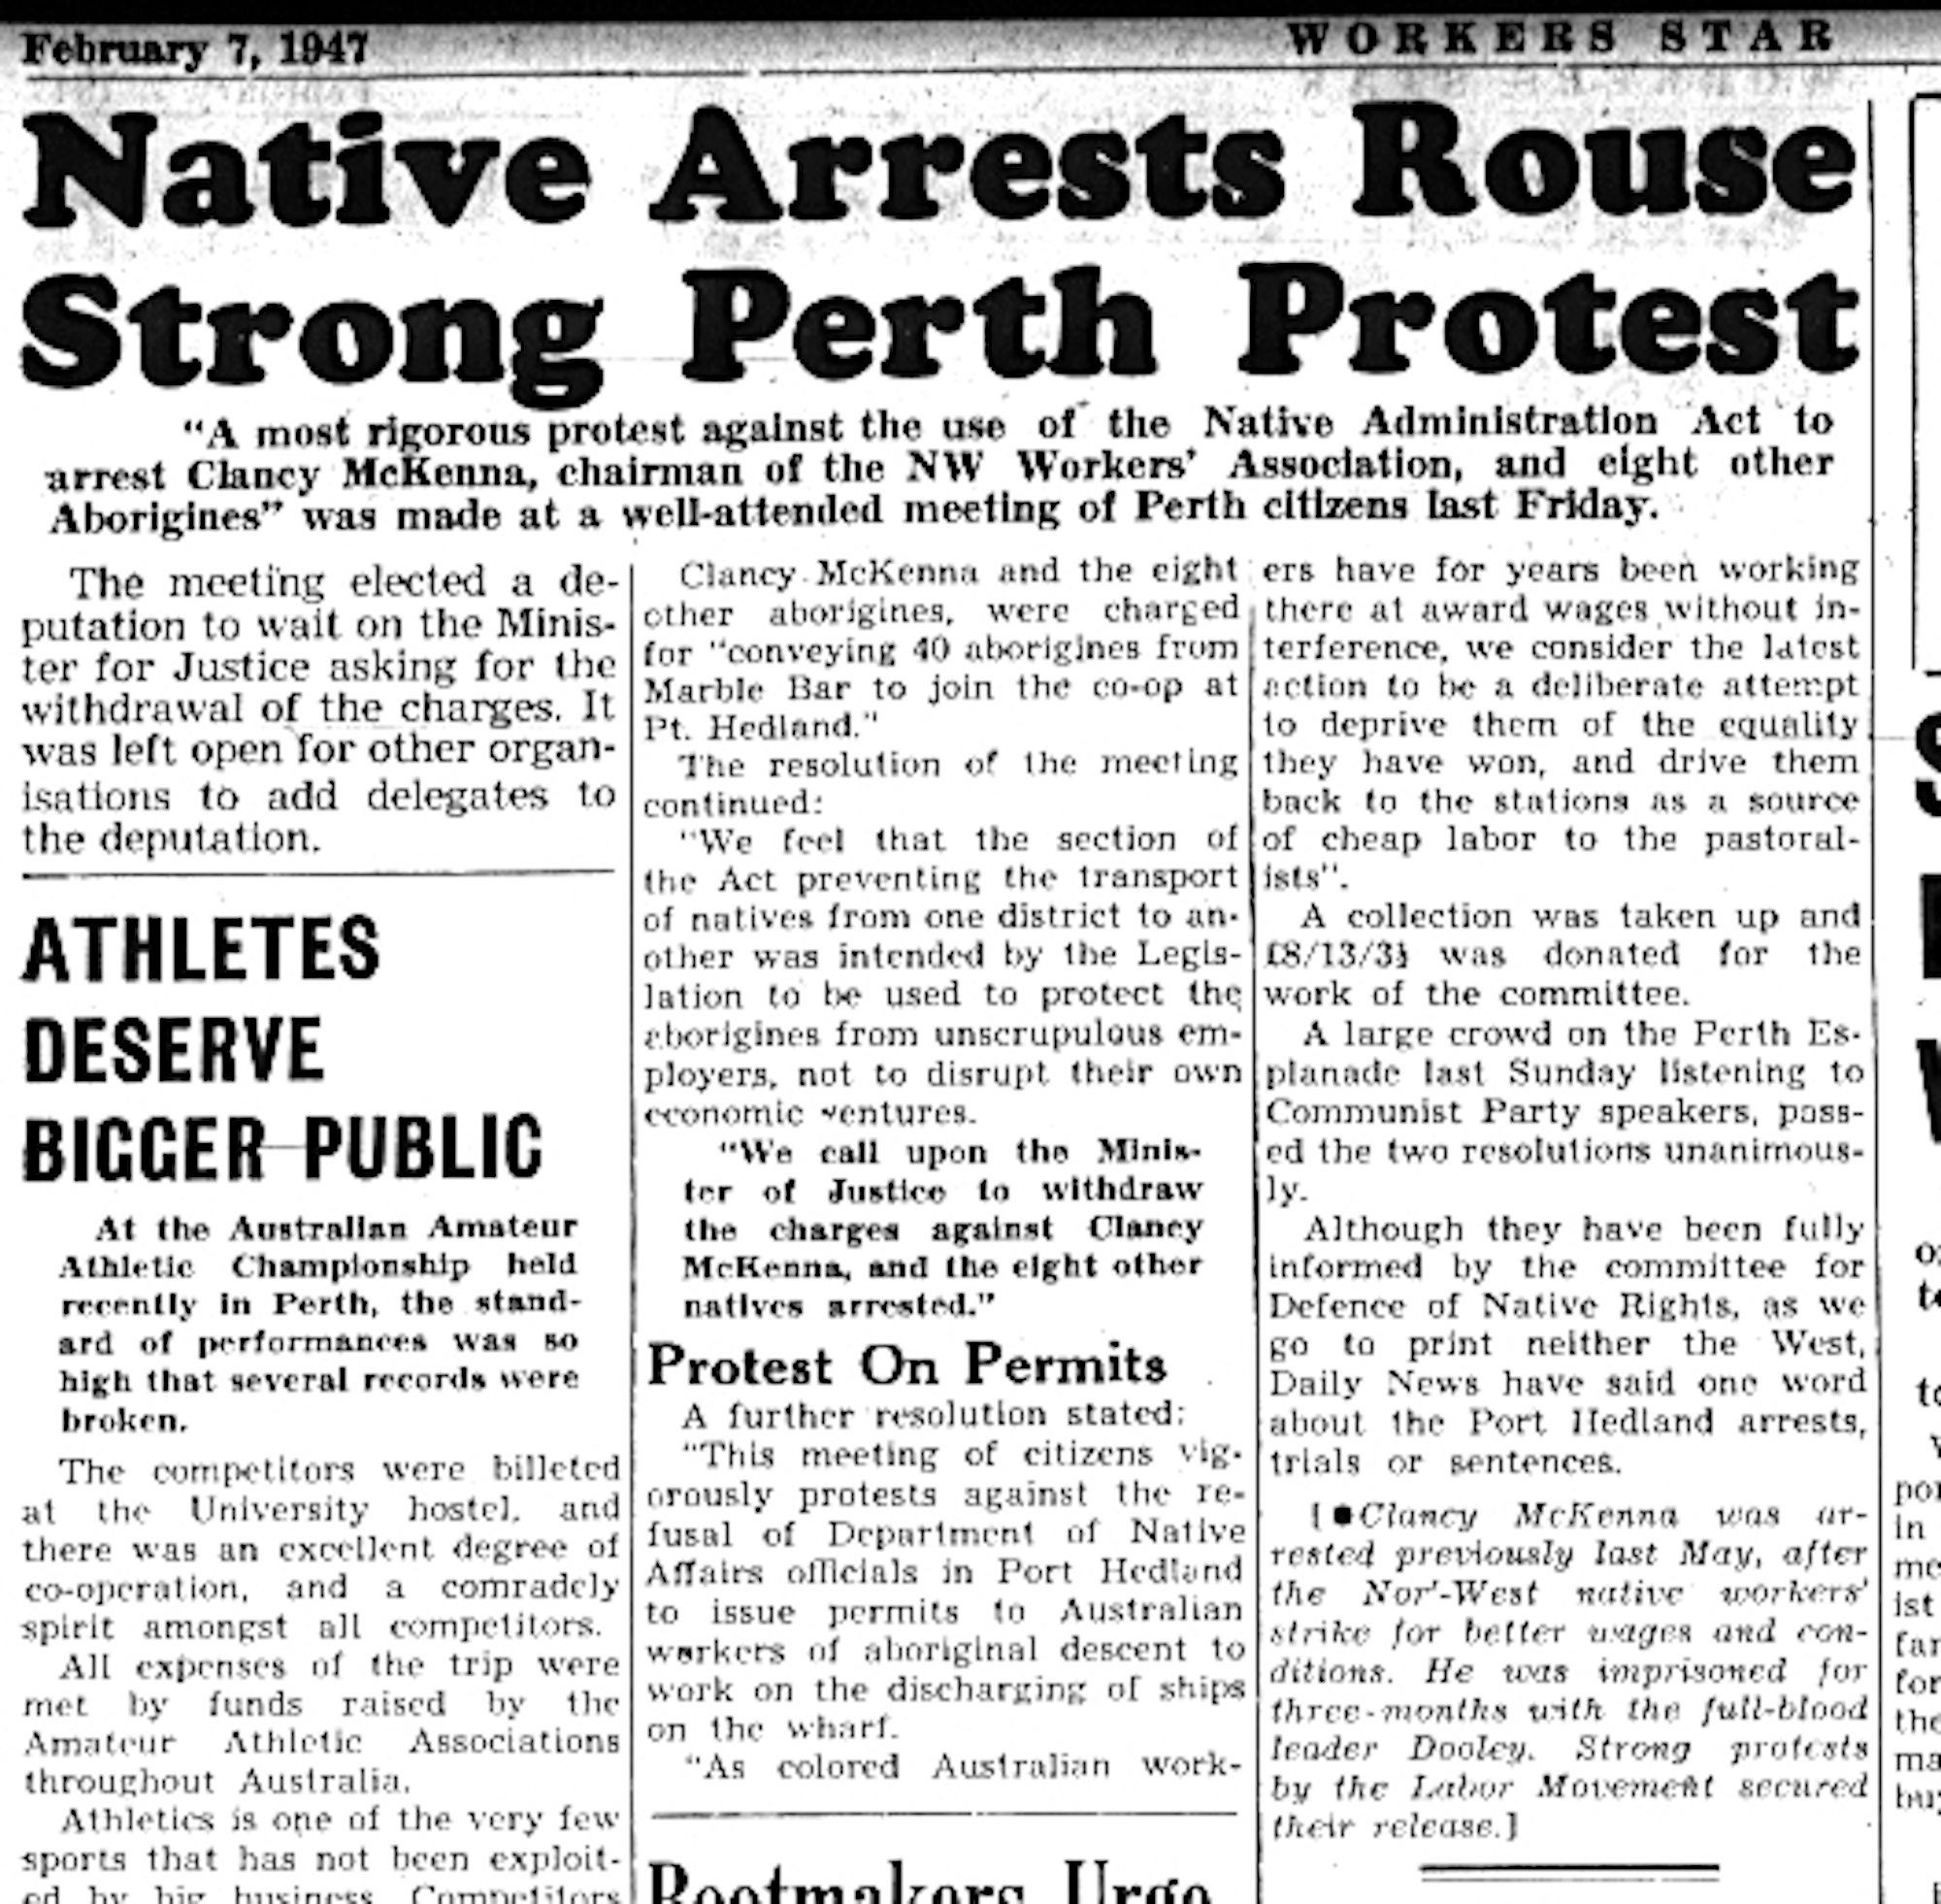 Native Arrests Rouse Strong Perth Protests